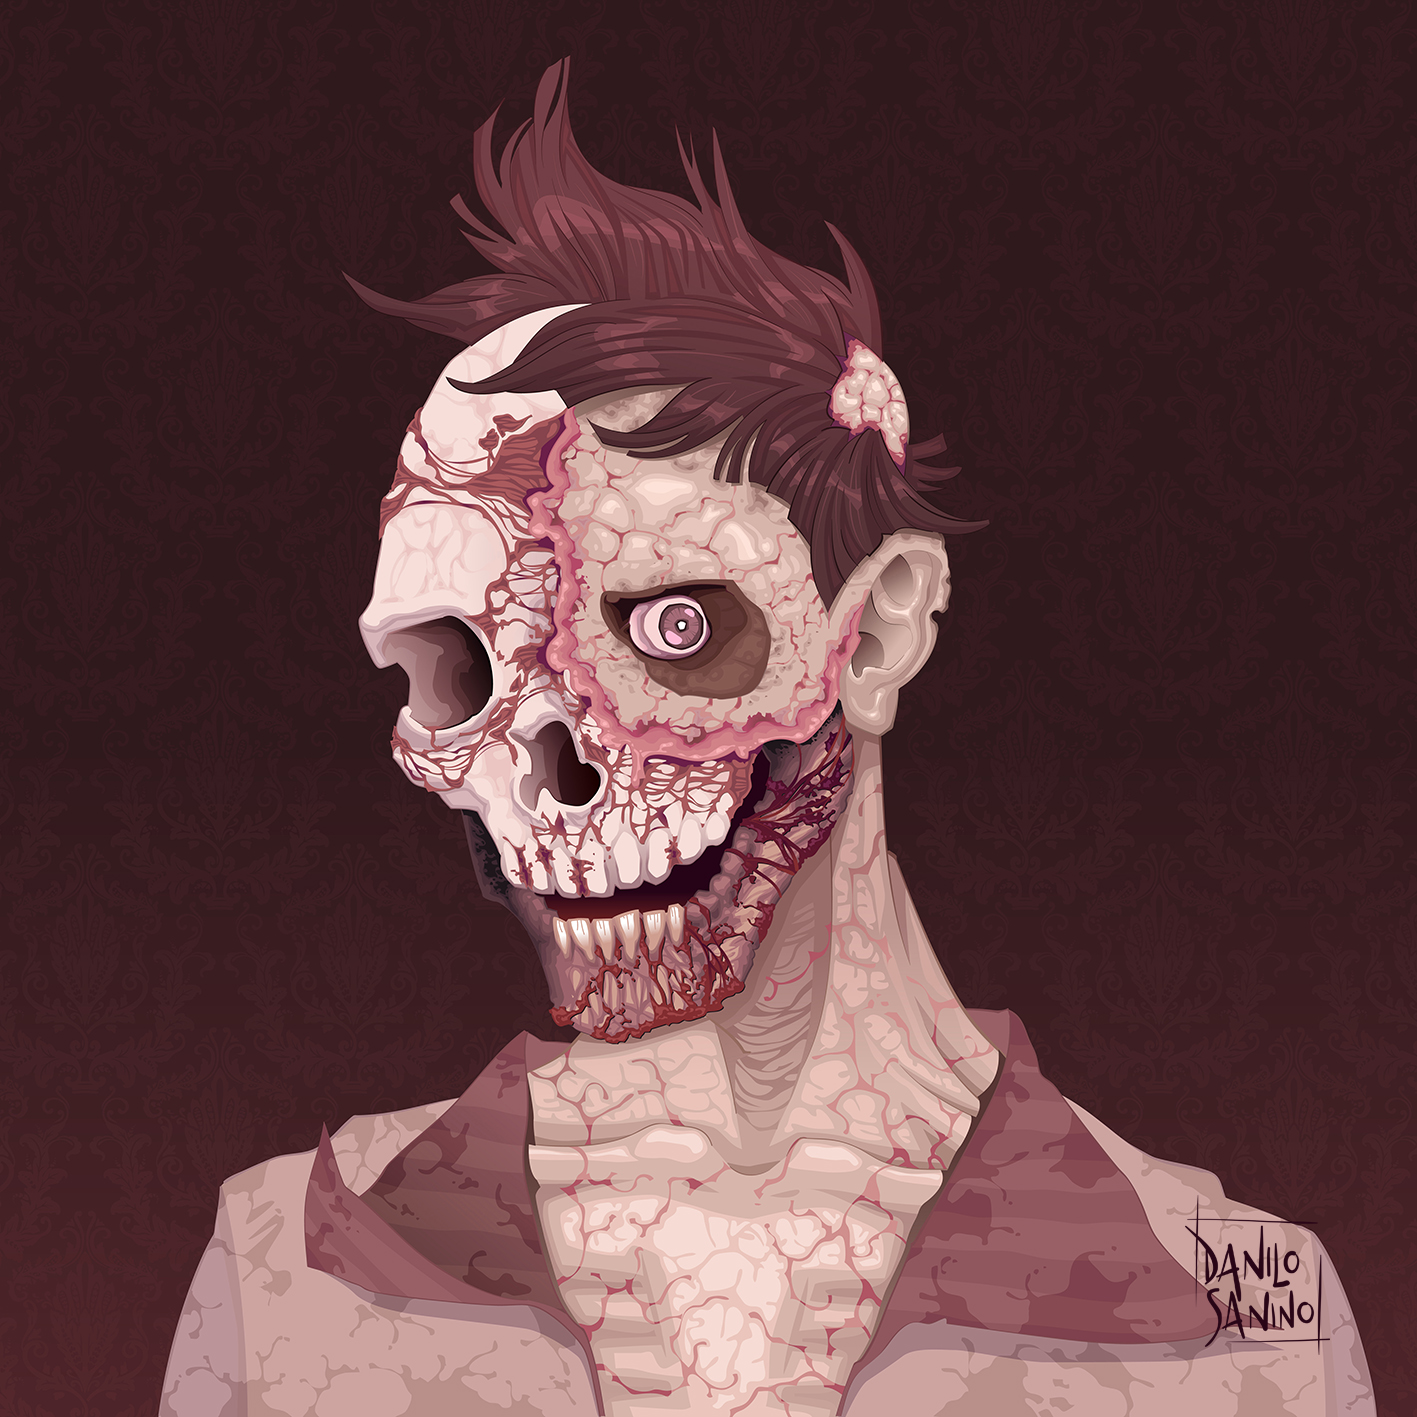 What does make us zombies? Fashion.